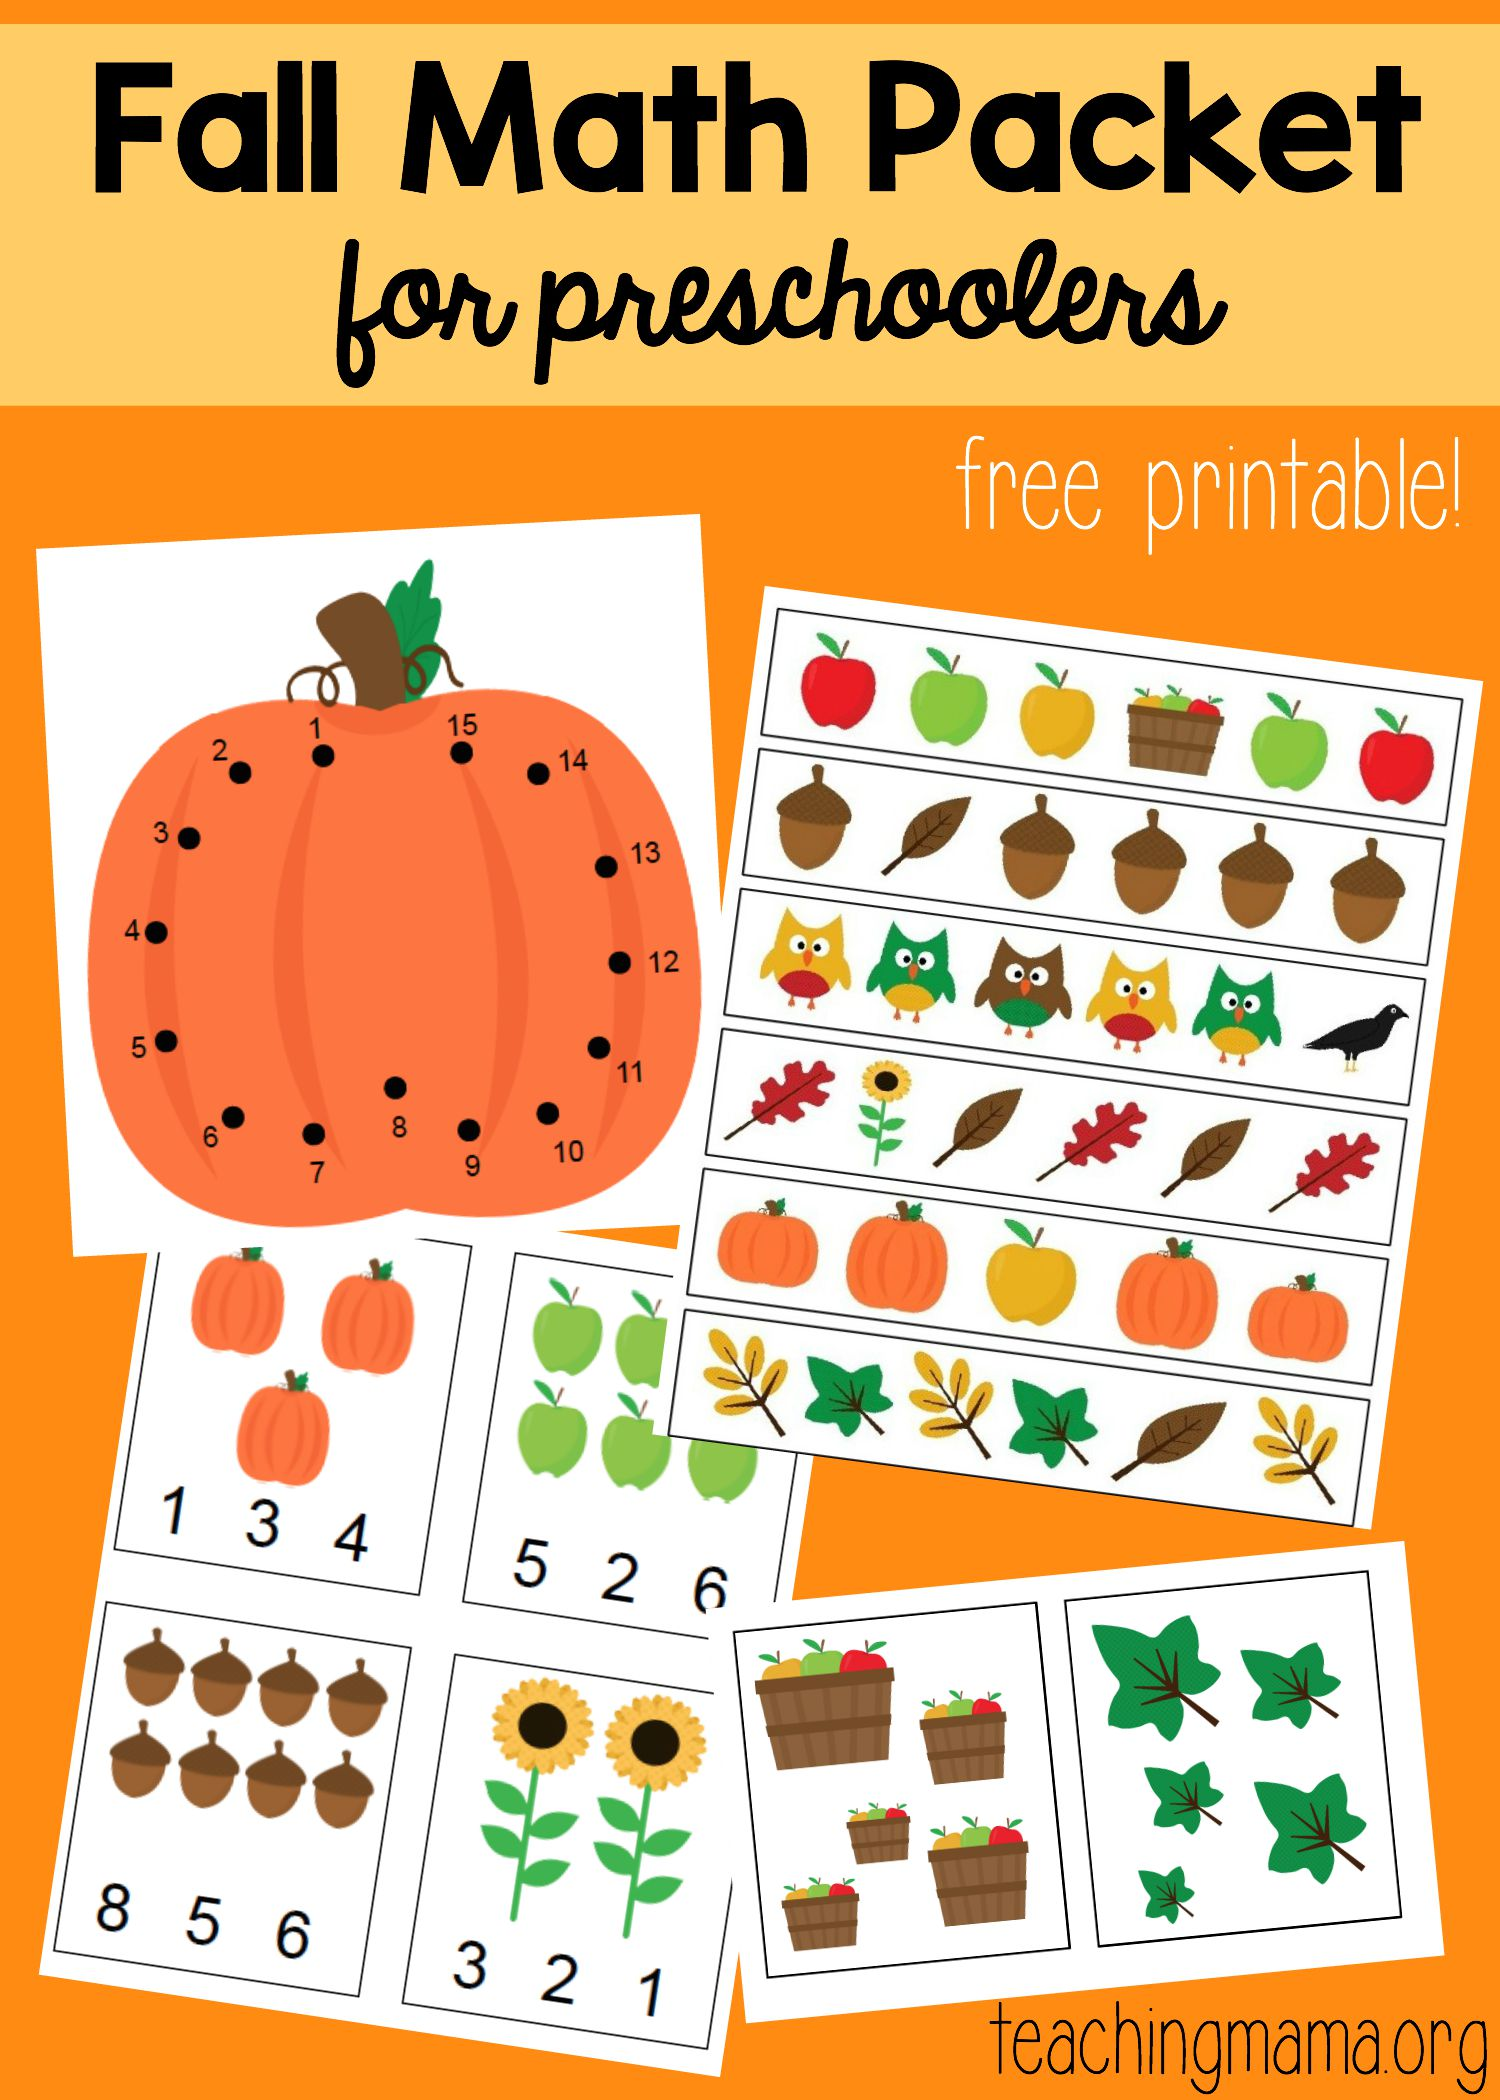 Math Packet for Preschoolers – Fall Worksheets for Preschool